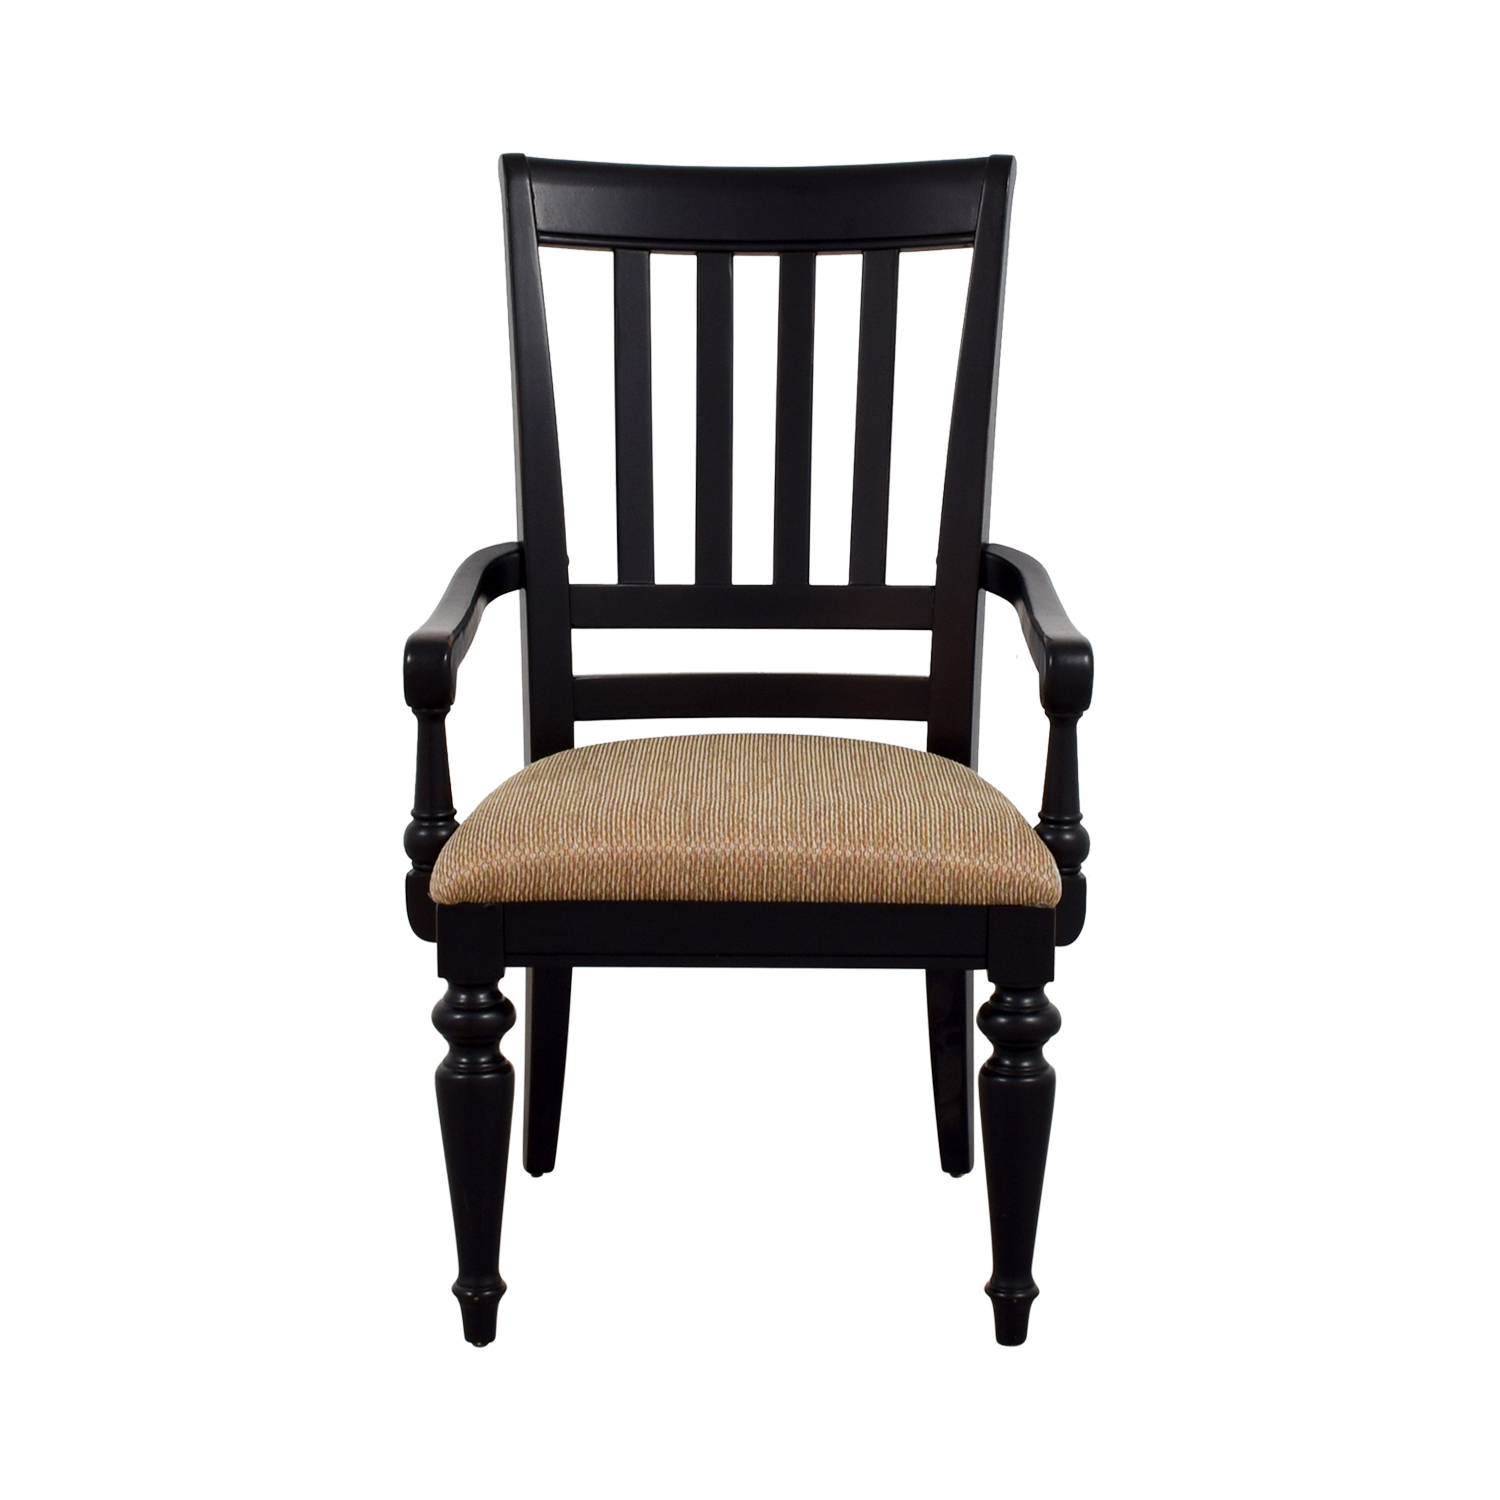 Black Arm Chair with Beige Upholstered Padded Seat coupon